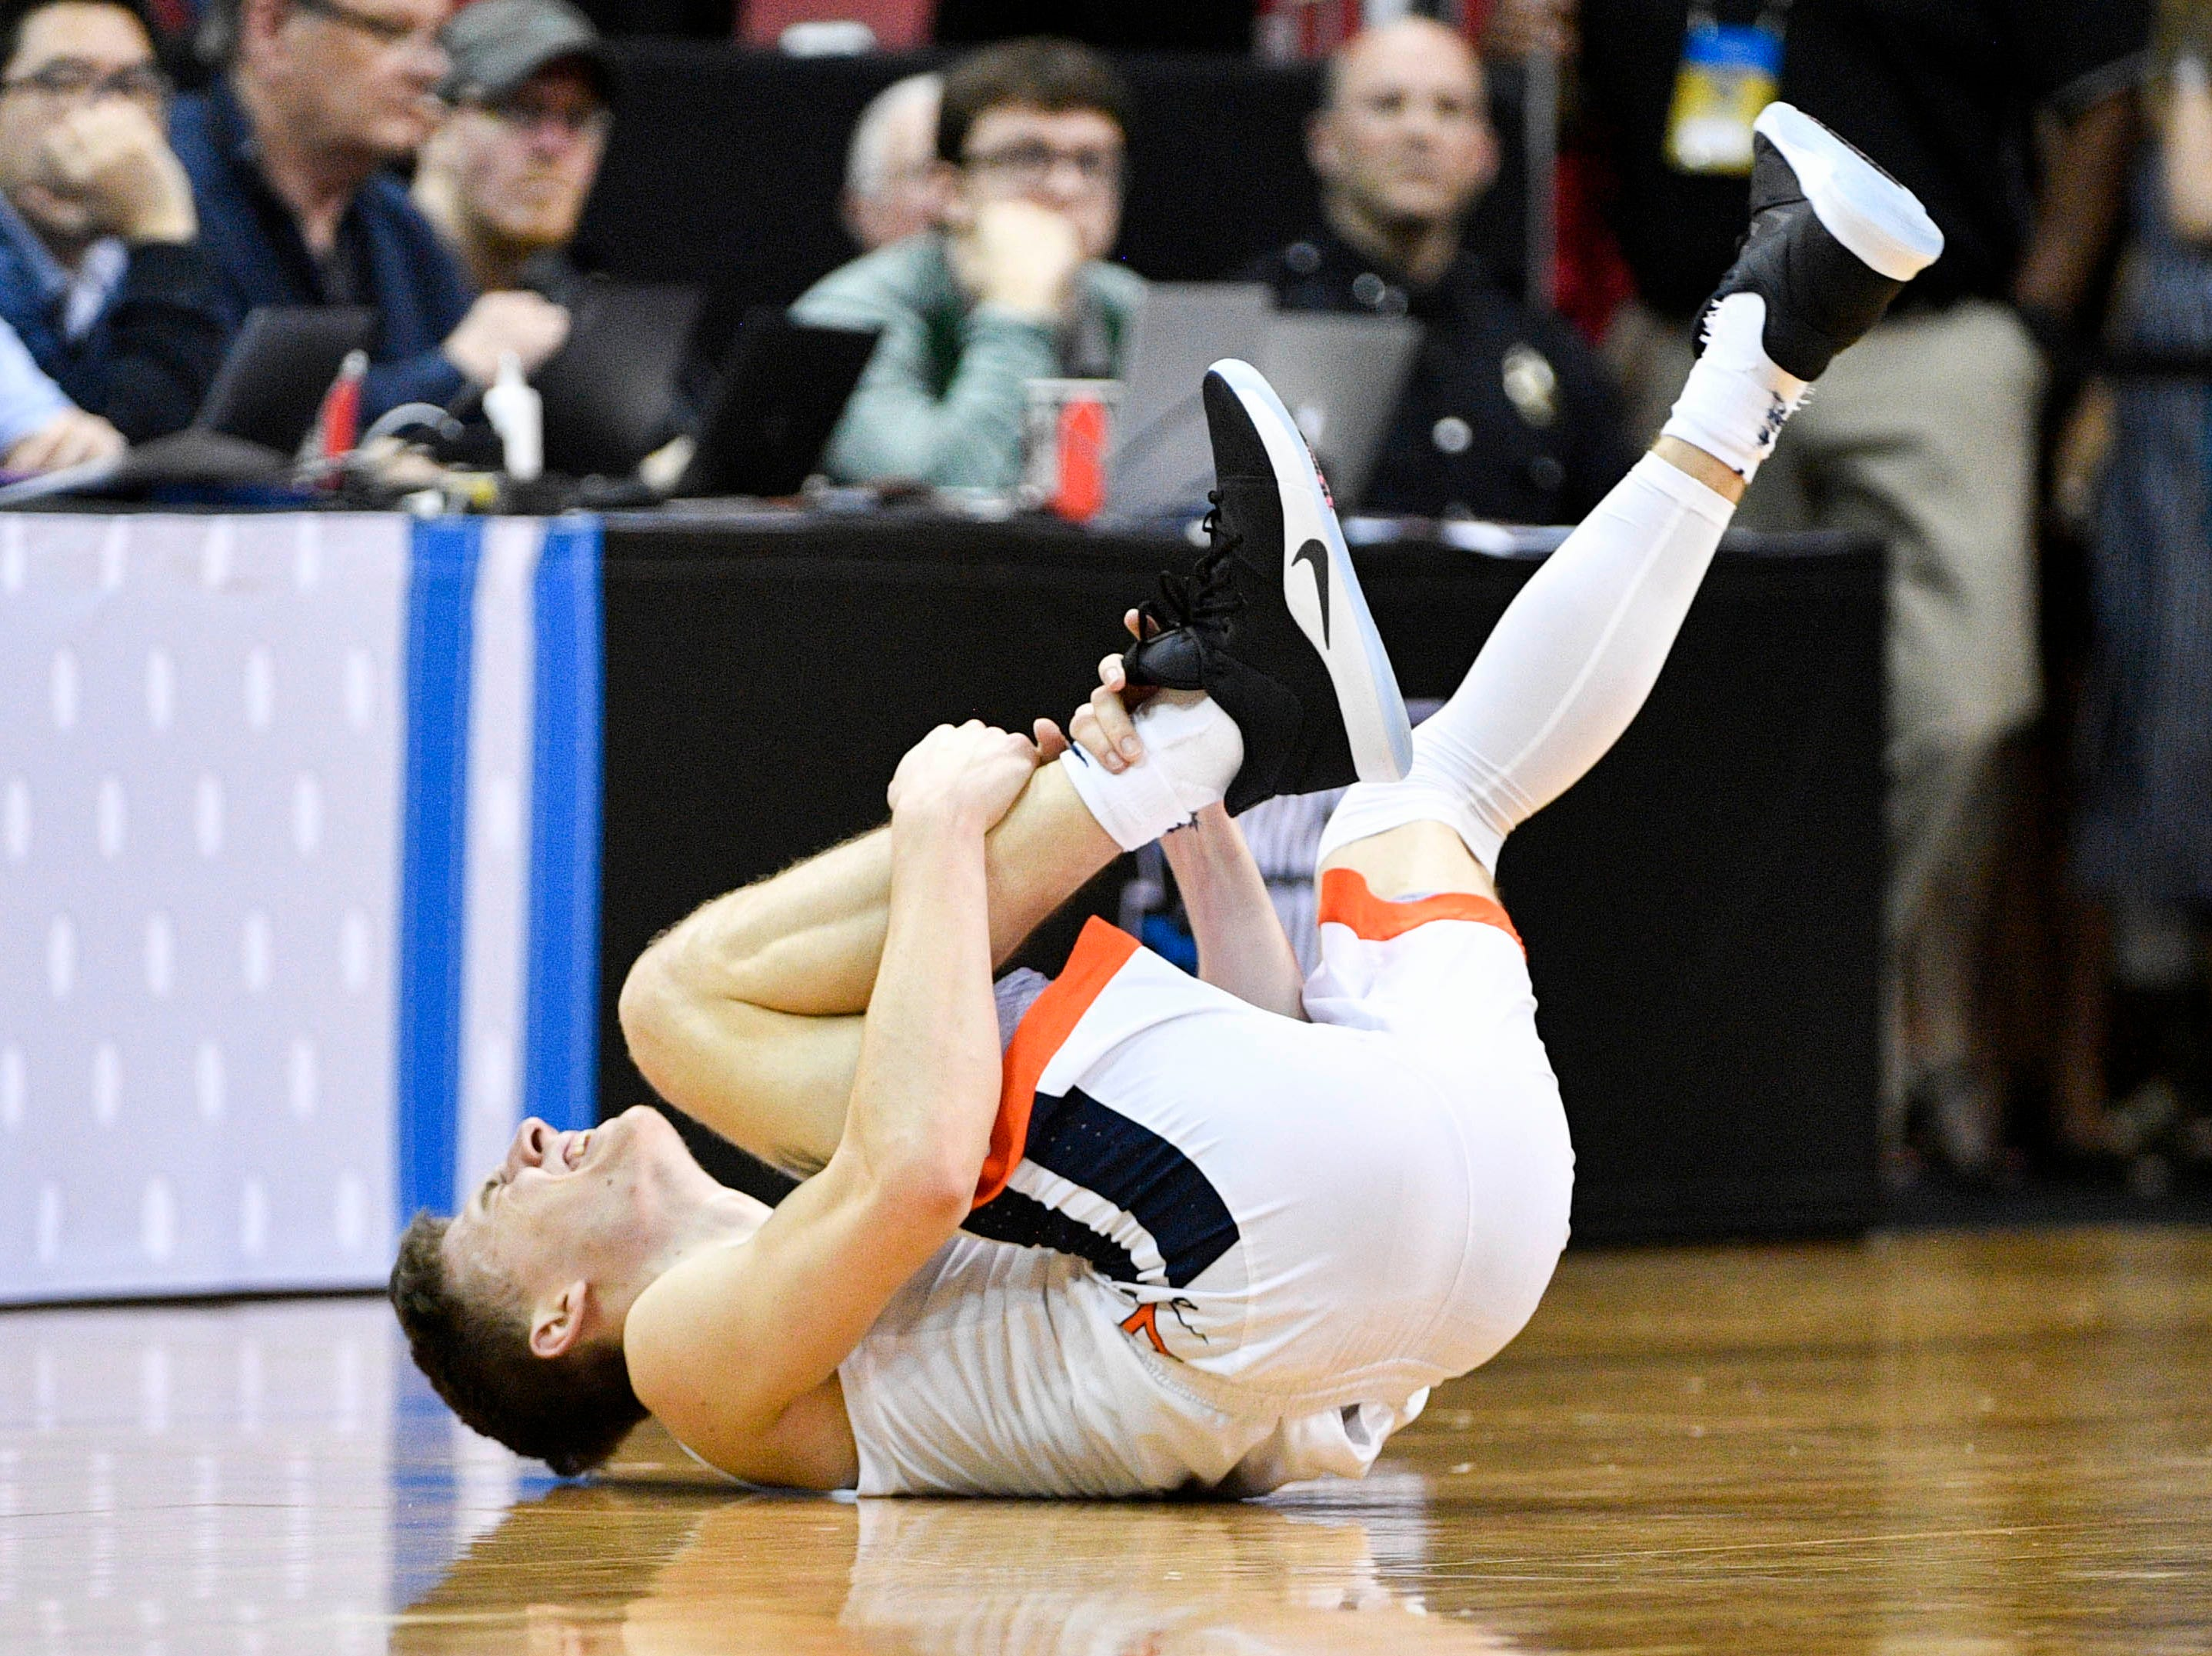 Mar 30, 2019; Louisville, KY, United States; Virginia Cavaliers guard Kyle Guy (5) reacts while holding his leg during the first half in the championship game against the Purdue Boilermakers of the south regional of the 2019 NCAA Tournament at KFC Yum Center. Mandatory Credit: Jamie Rhodes-USA TODAY Sports